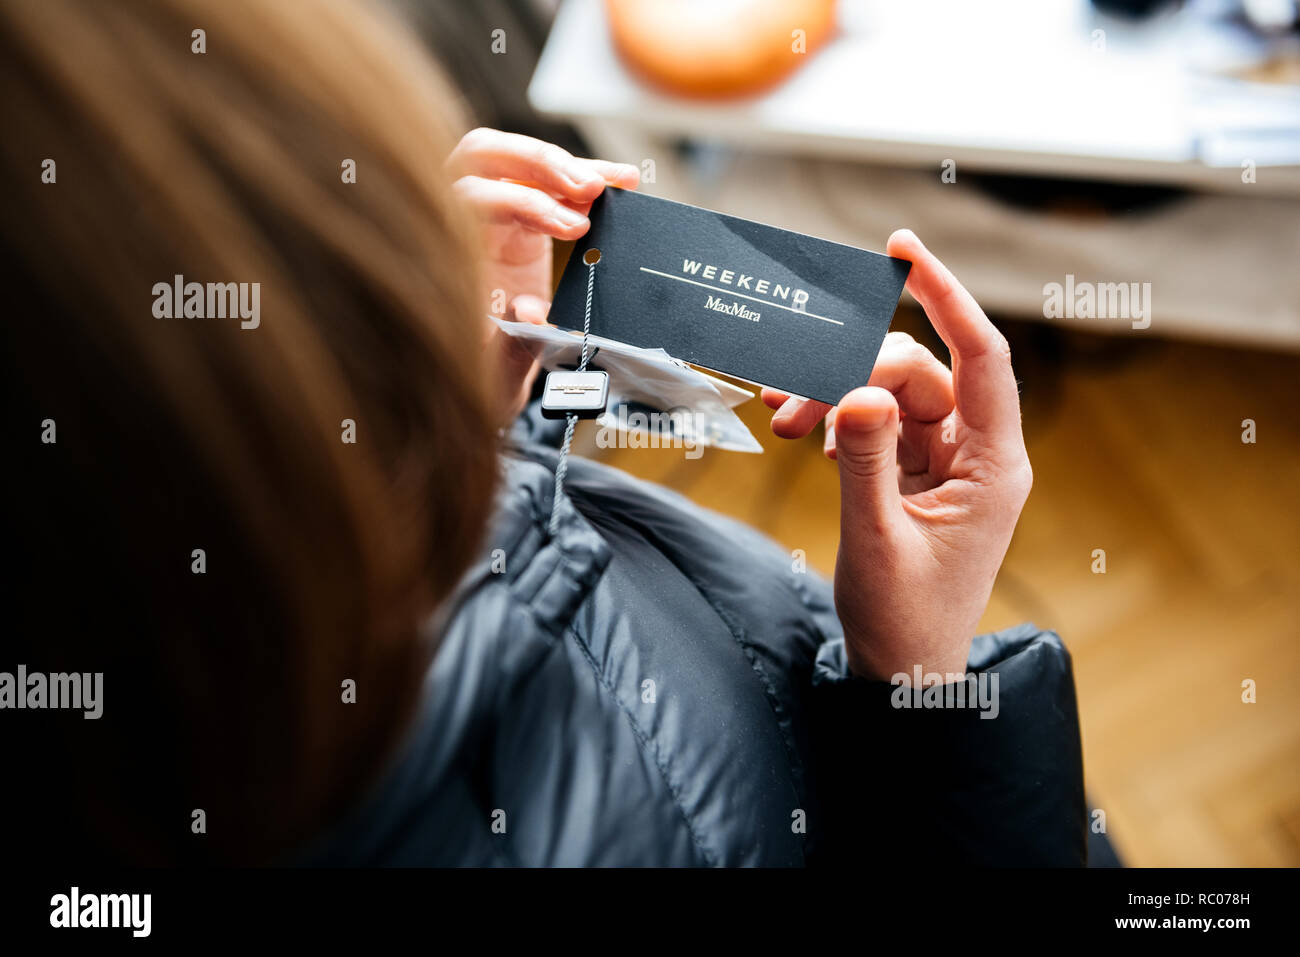 PARIS, FRANCE - FEB 2, 2018: Overhead view of woman wearing Max Mara Weekend Italian buy new fashionable down jacket reading price tag and logo Stock Photo